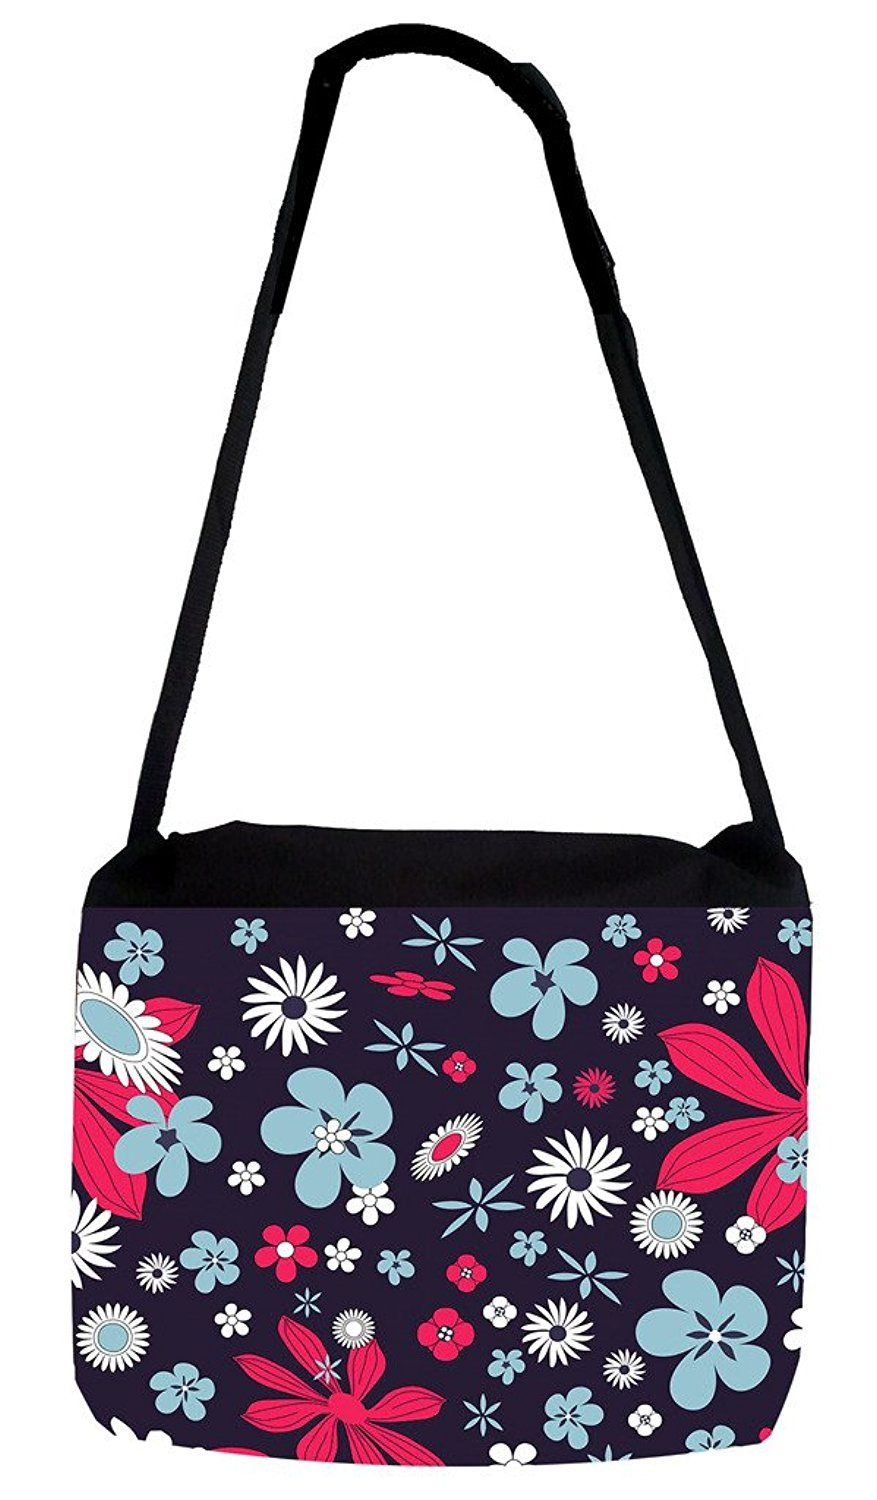 Dotty Flowers TM Medium Sized Messenger Bag 11.75 x 15.5 and 5 x 8 Pencil Case SET Rosie Parker Inc